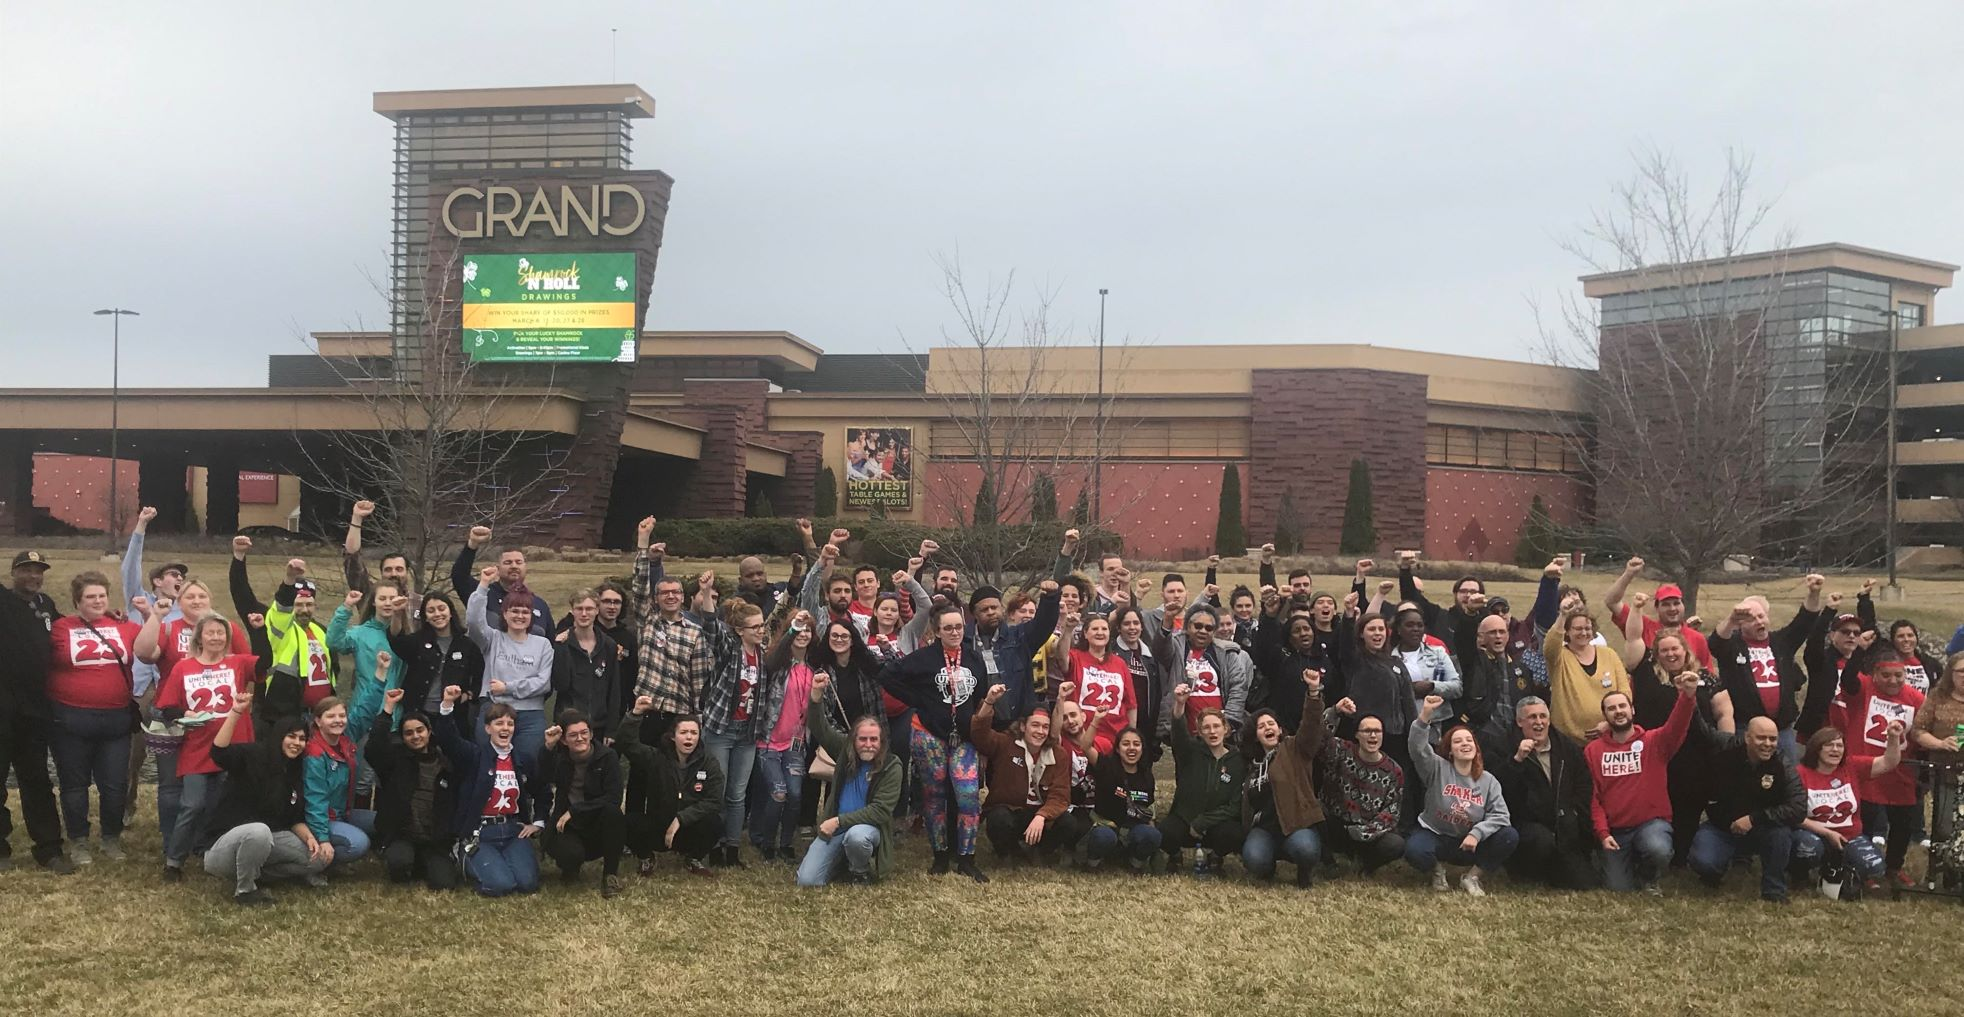 Casino workers at Indiana Grand stand union strong